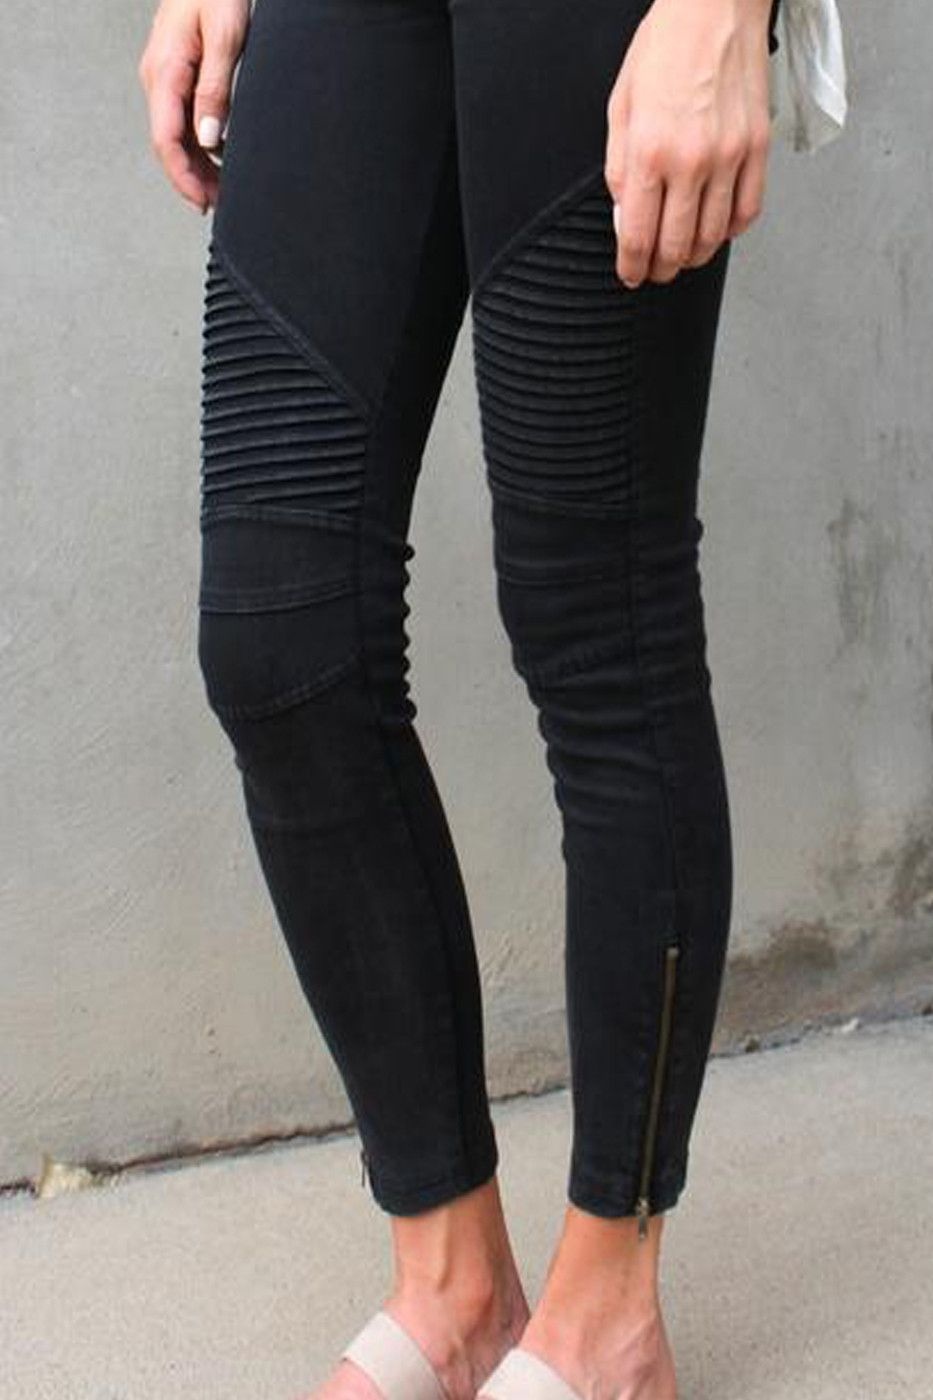 2bafcbfa7c4b6 Still looking for your favorite pair of jeans  You just found them! - You  will want a pair of these leggings in every color!! - Super comfy